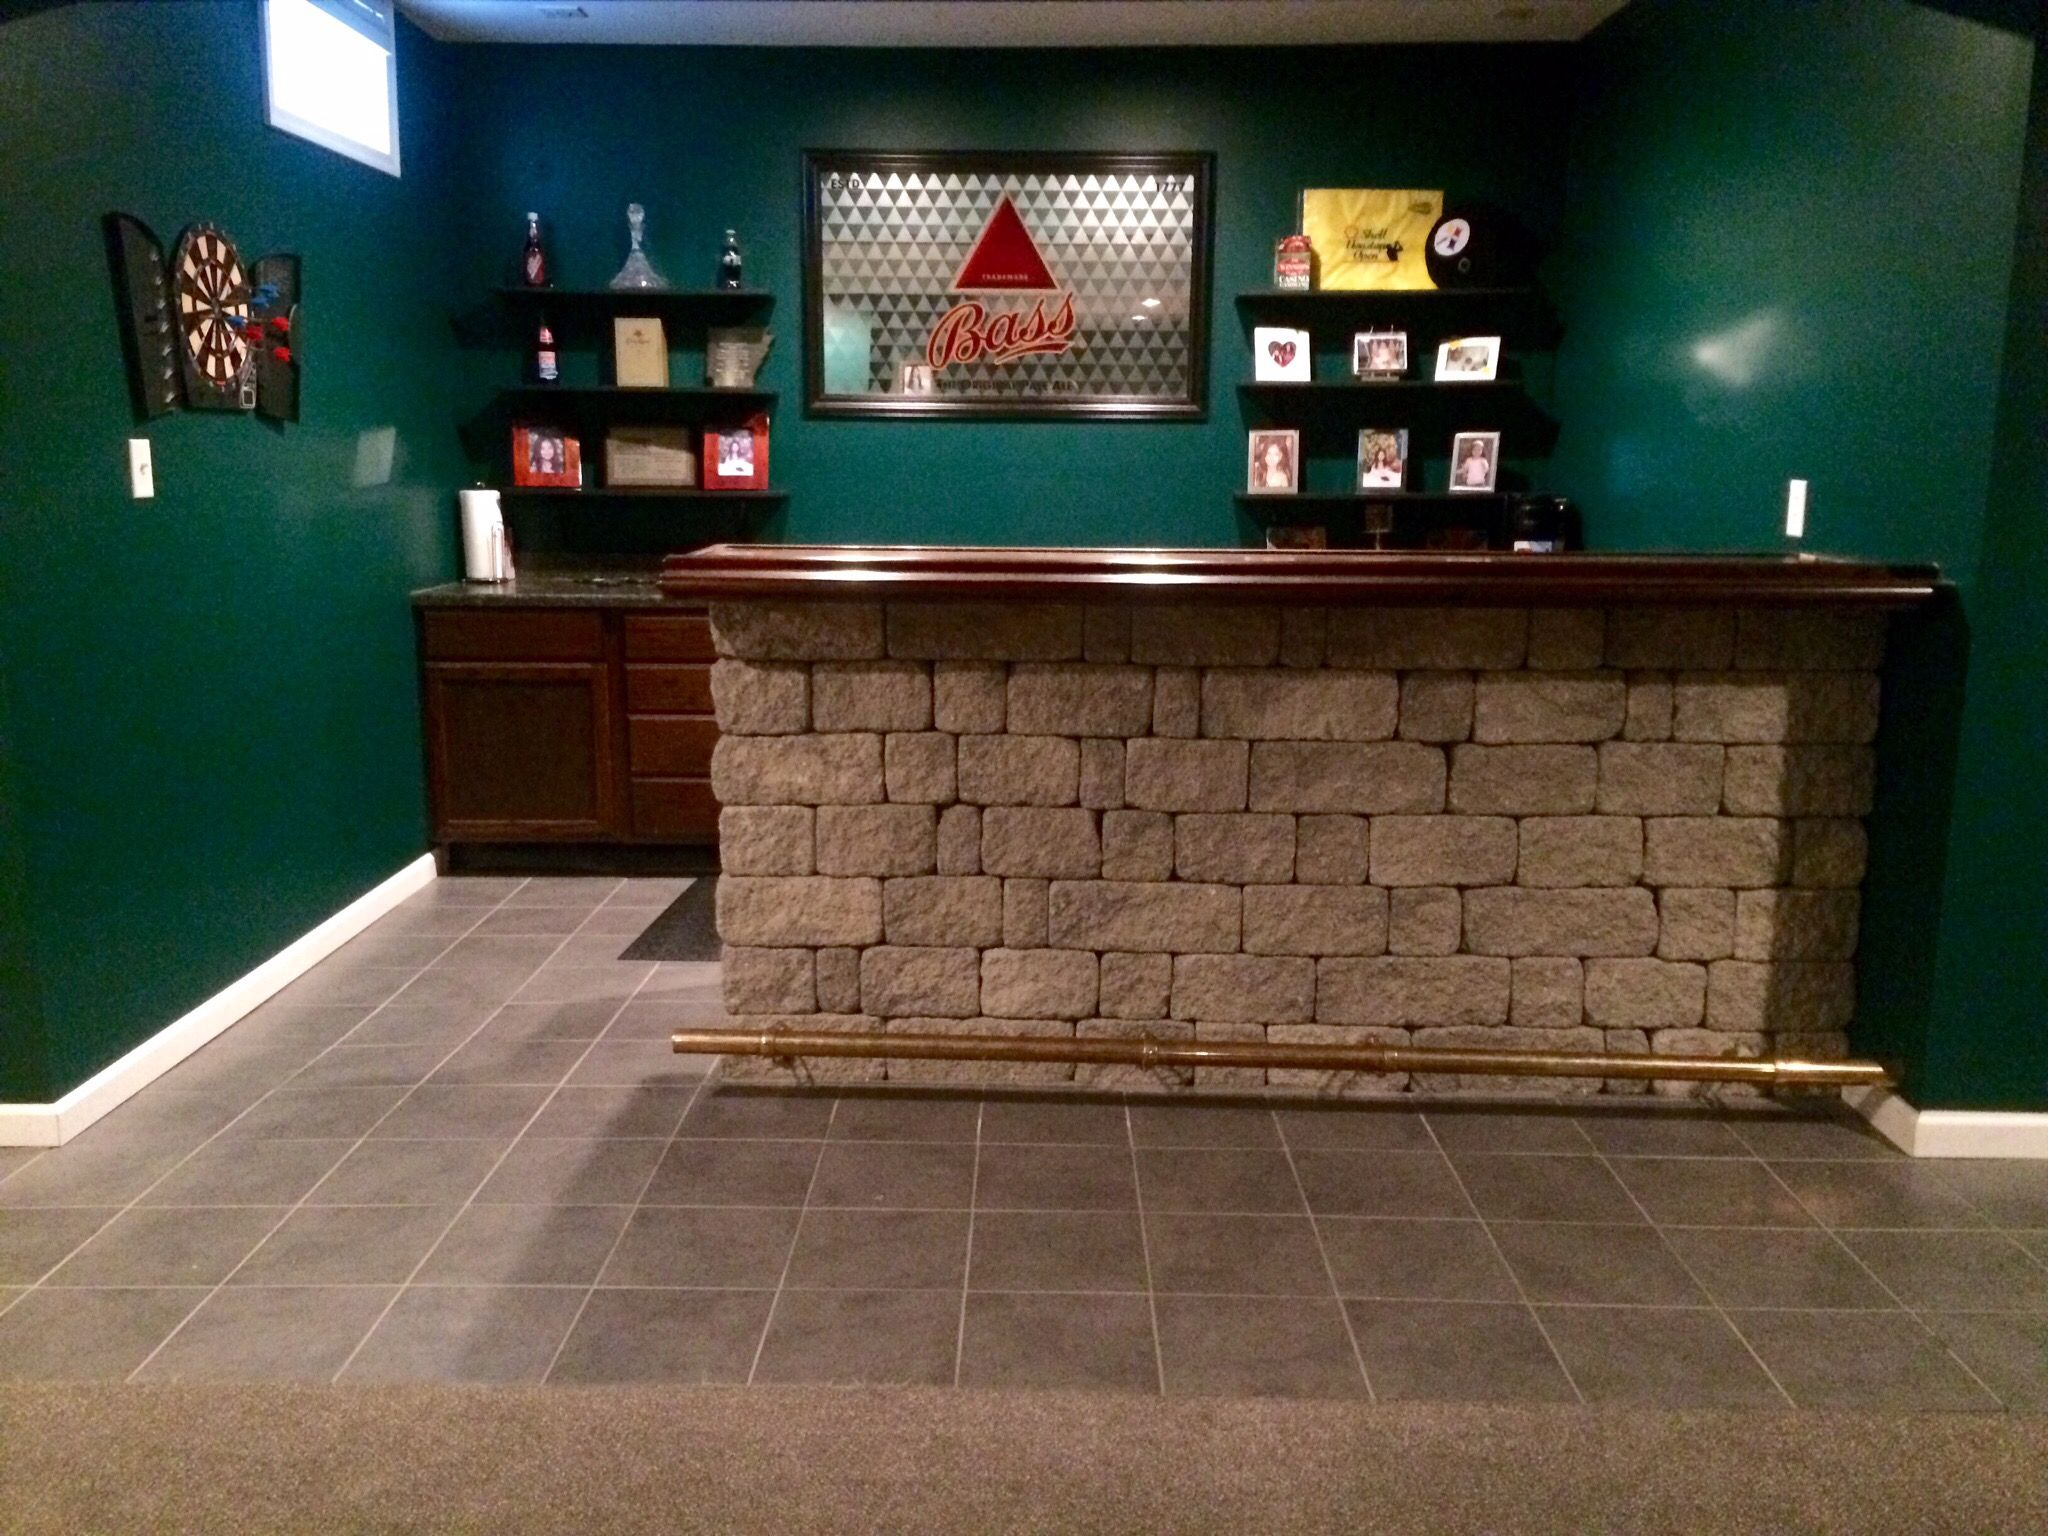 Custom Built Bar for Entertaining